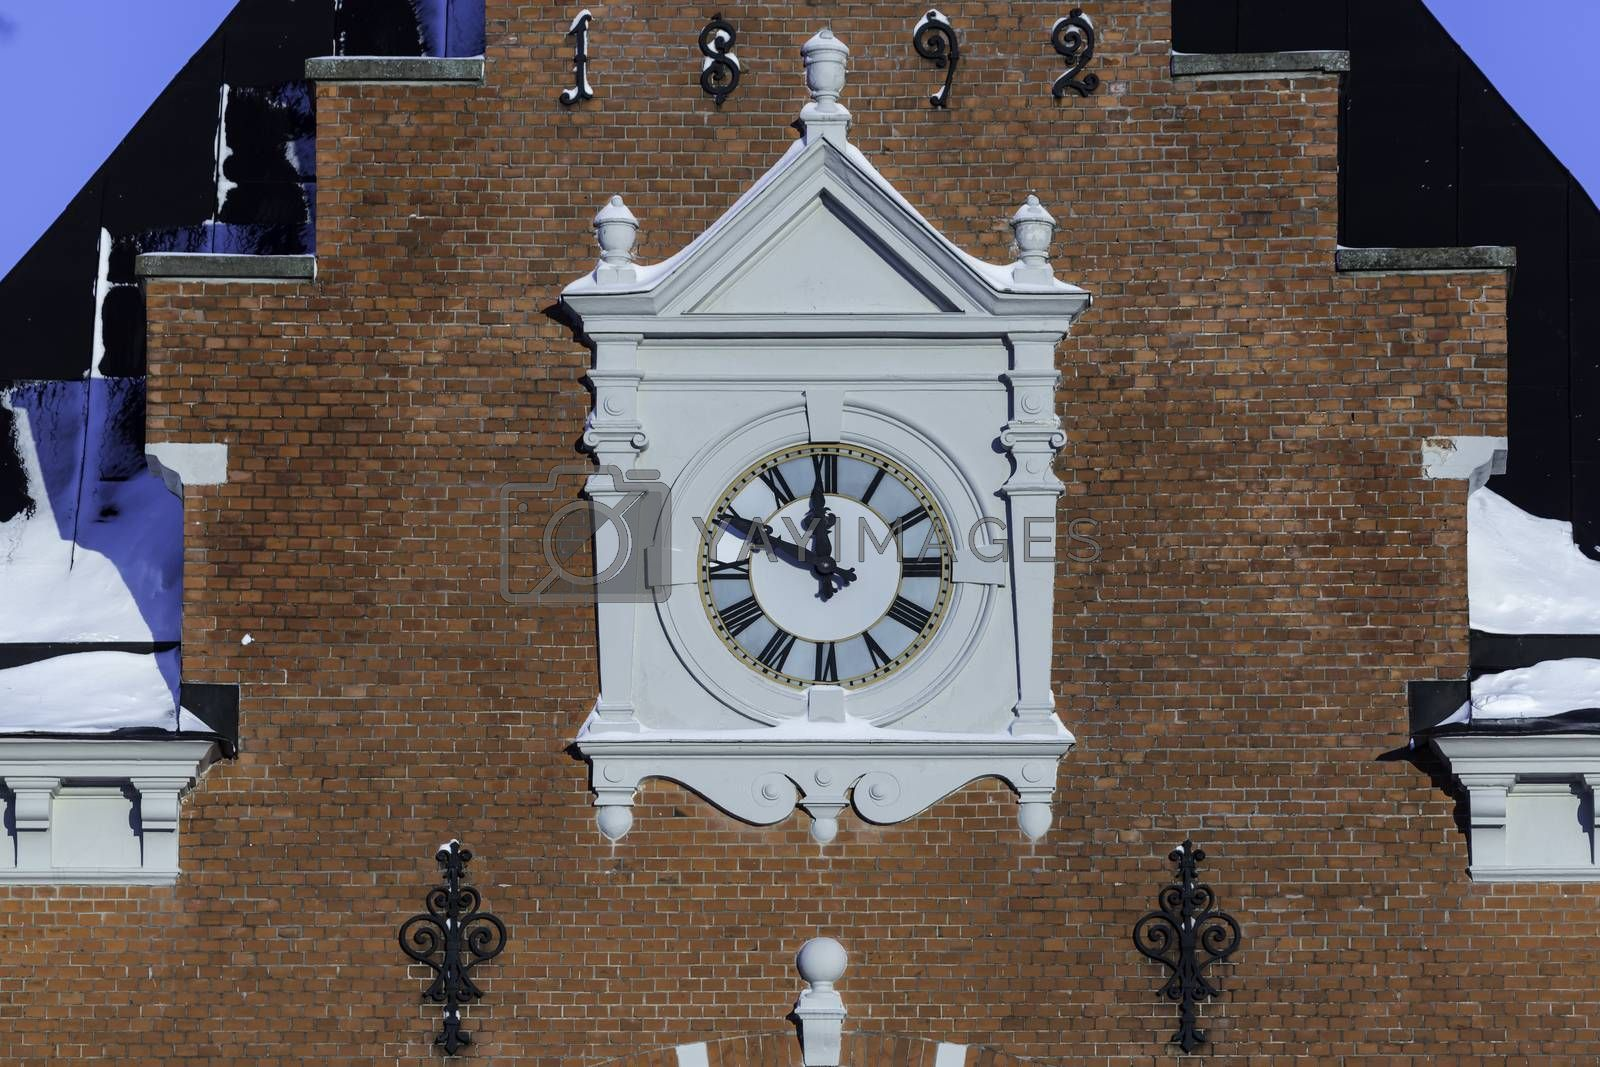 The Clock on the Umea, Sweden Town House by Emmoth